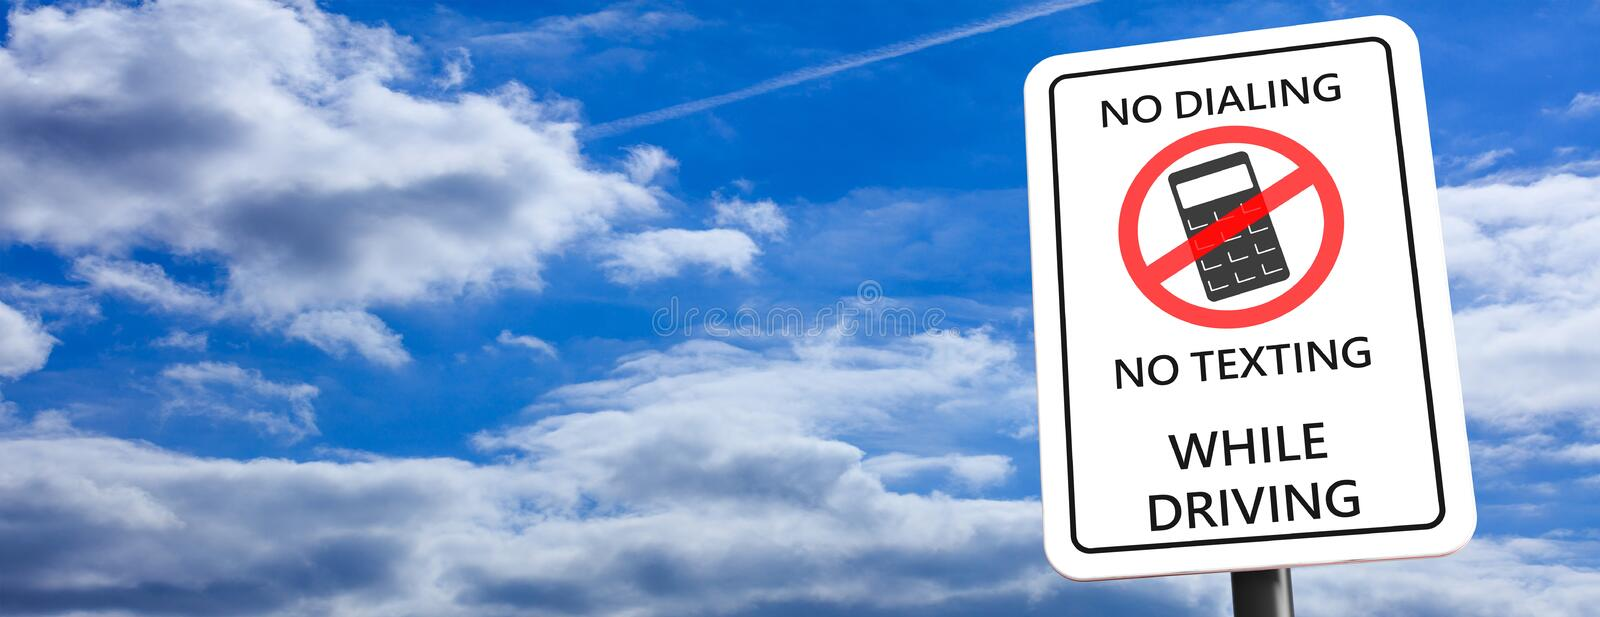 No dialing, no texting while driving, sign on blue cloudy sky background, space for text, banner. 3d illustration royalty free illustration